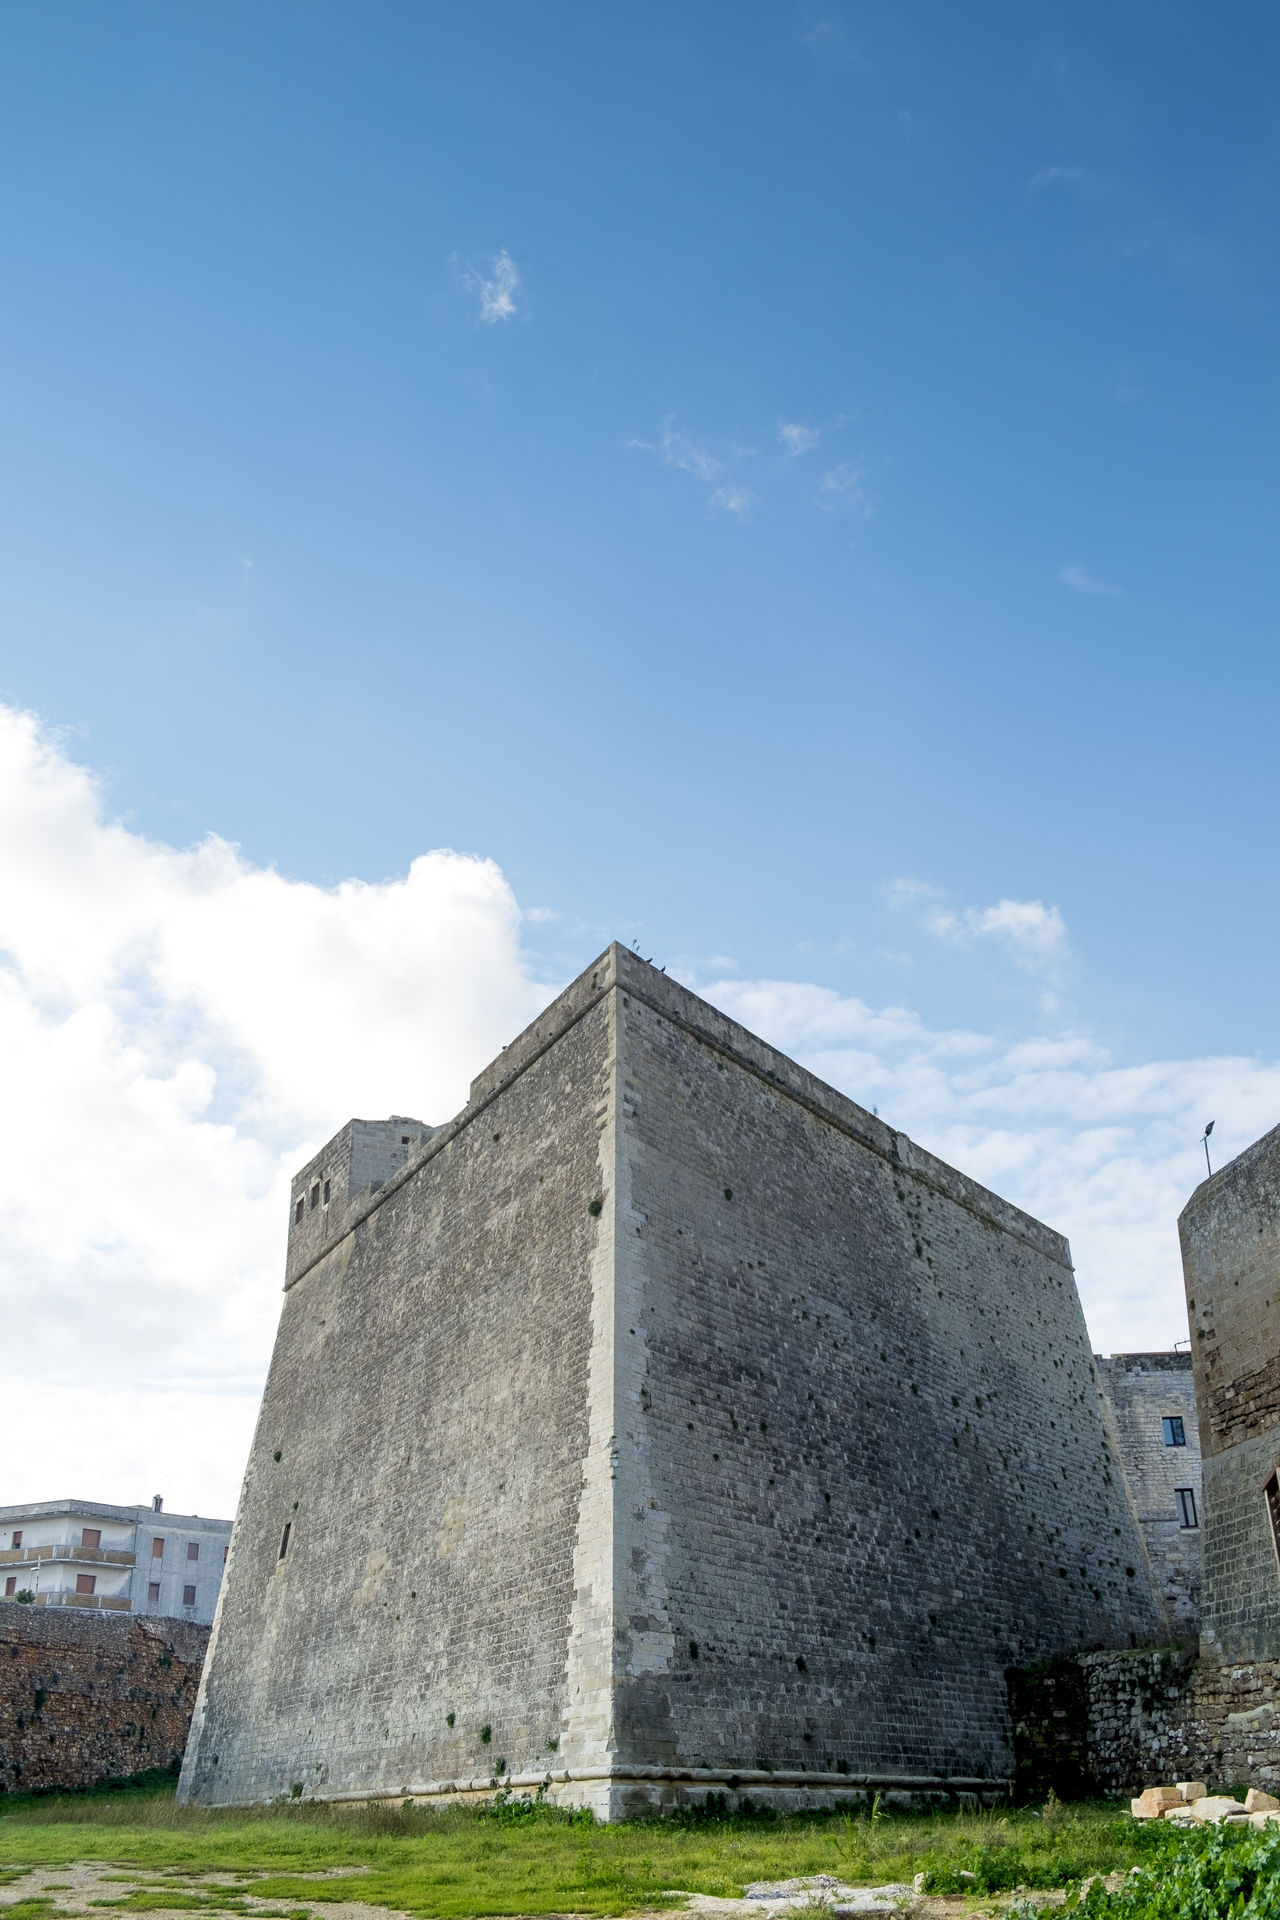 Ancient Civilization Architecture Building Exterior Built Structure Business Finance And Industry Castle Cloud - Sky Day History Italy No People Otranto Outdoors Puglia Pyramid Salento Sky Tomb Tourism Travel Travel Destinations Travel Photography